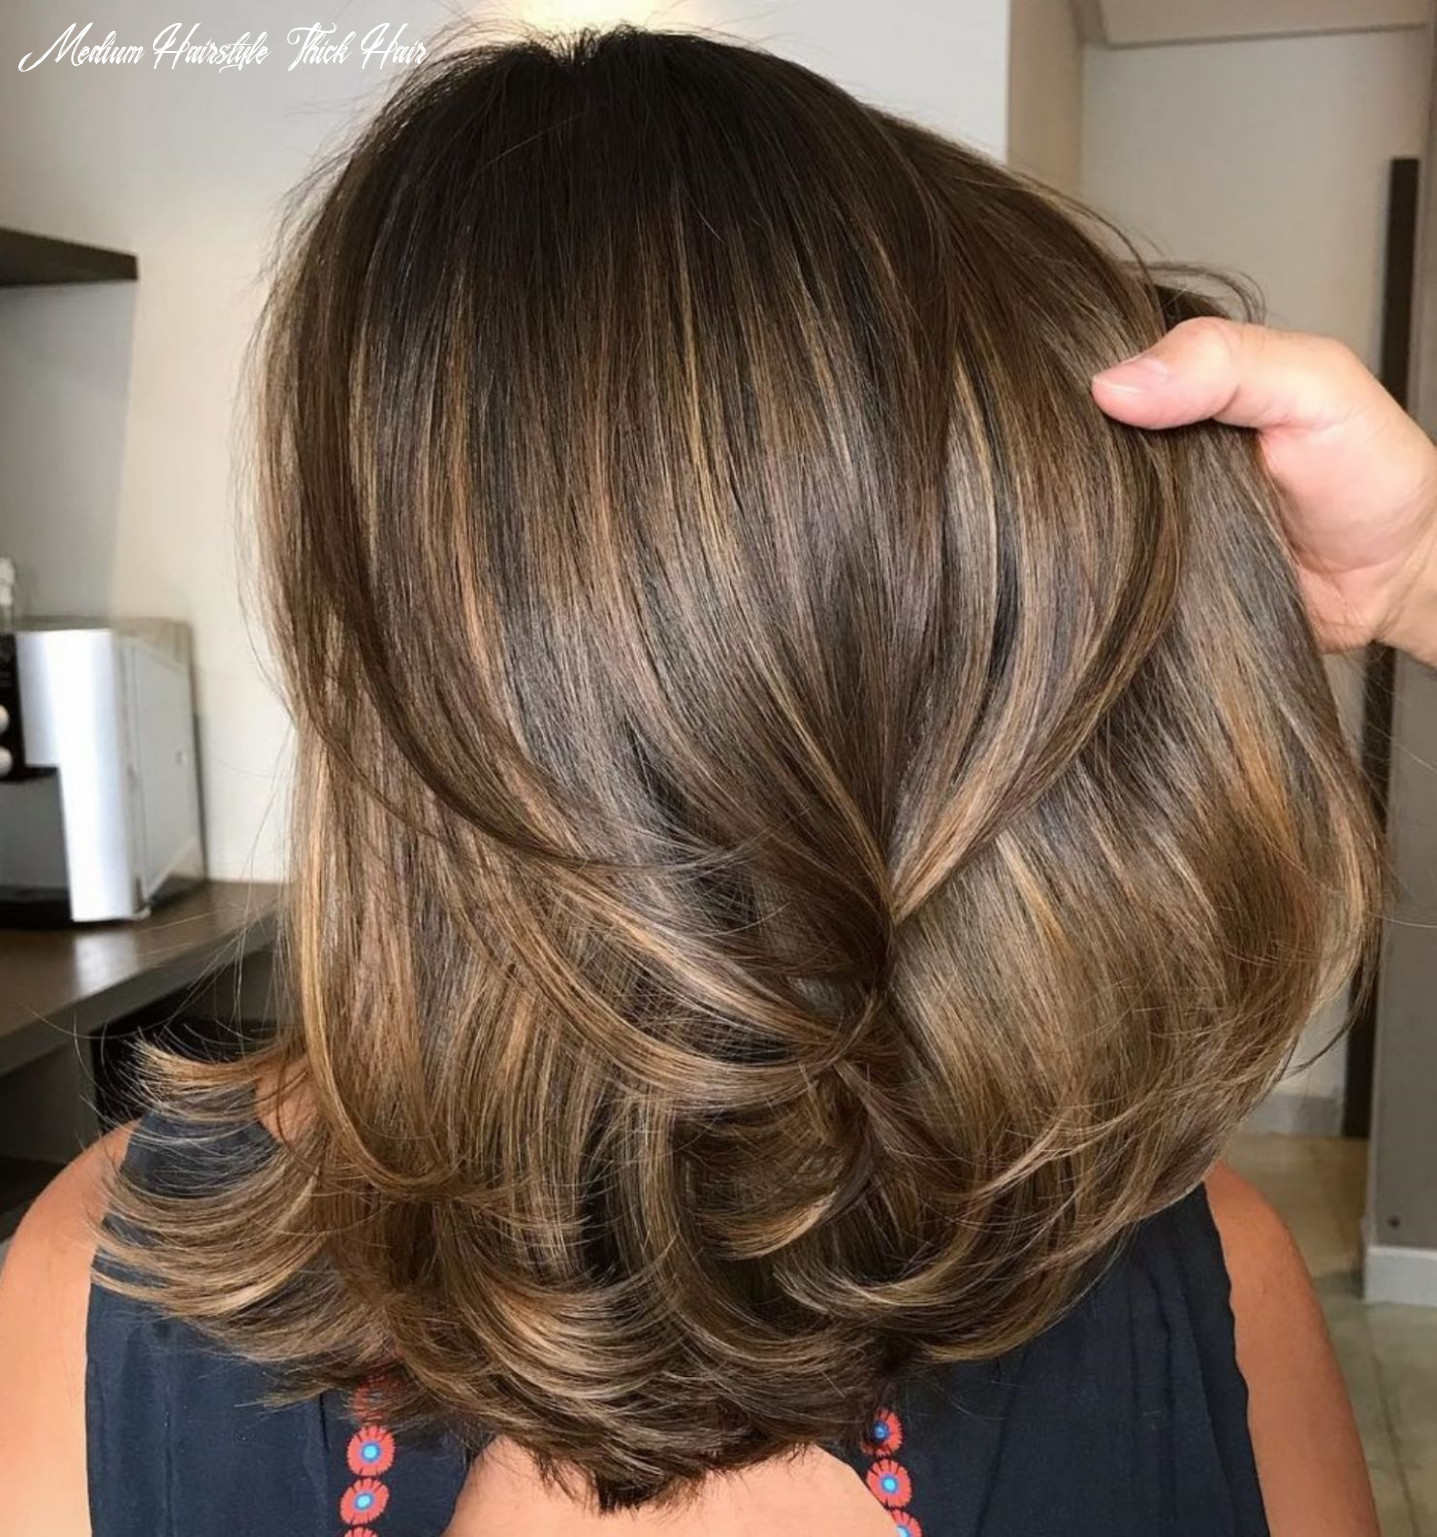 Pin on hairstyles medium hairstyle thick hair